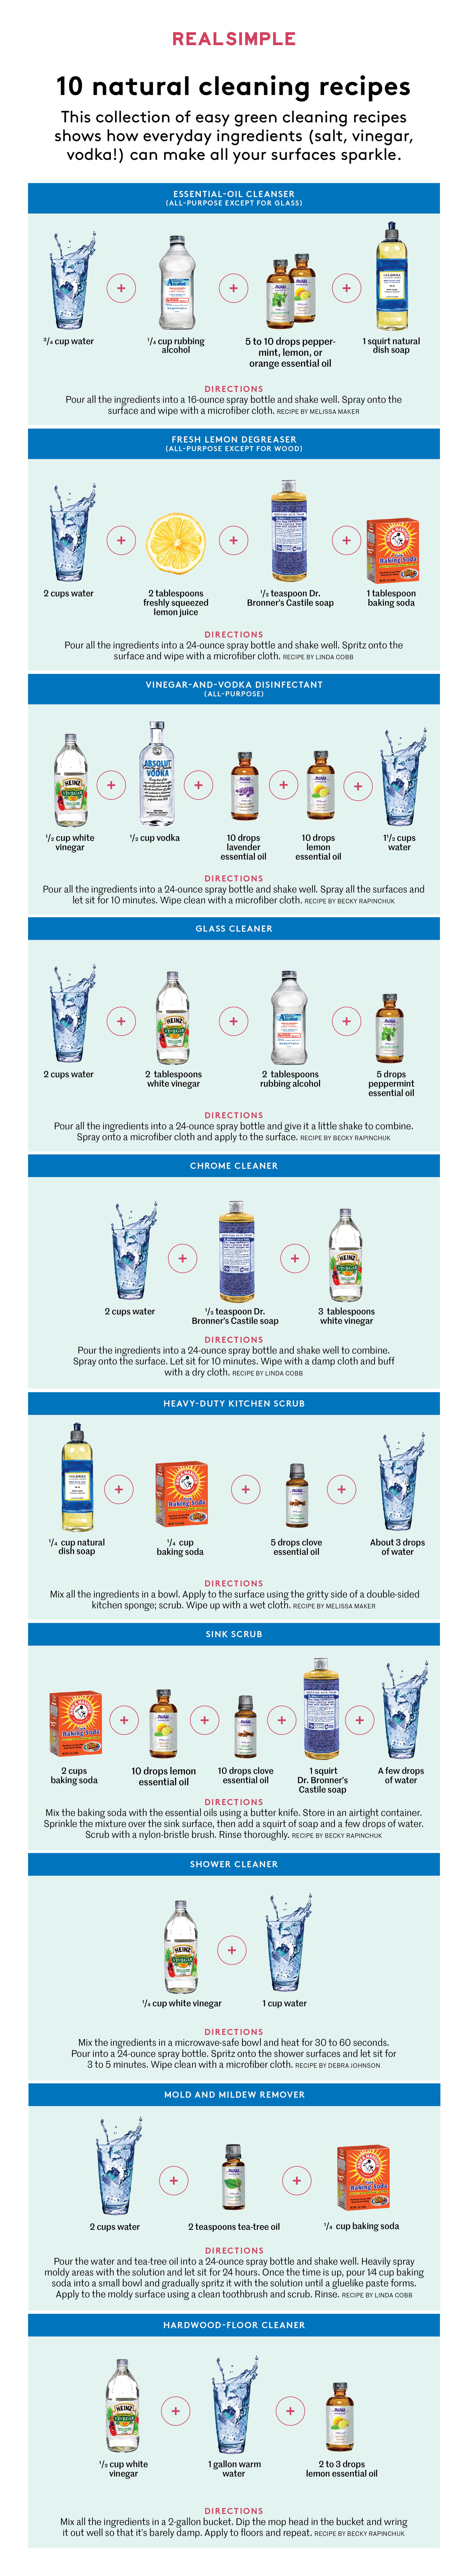 10 All Natural  DIY Cleaners. Natural Cleaning Recipes to Scrub Every Inch of Your Home   Real